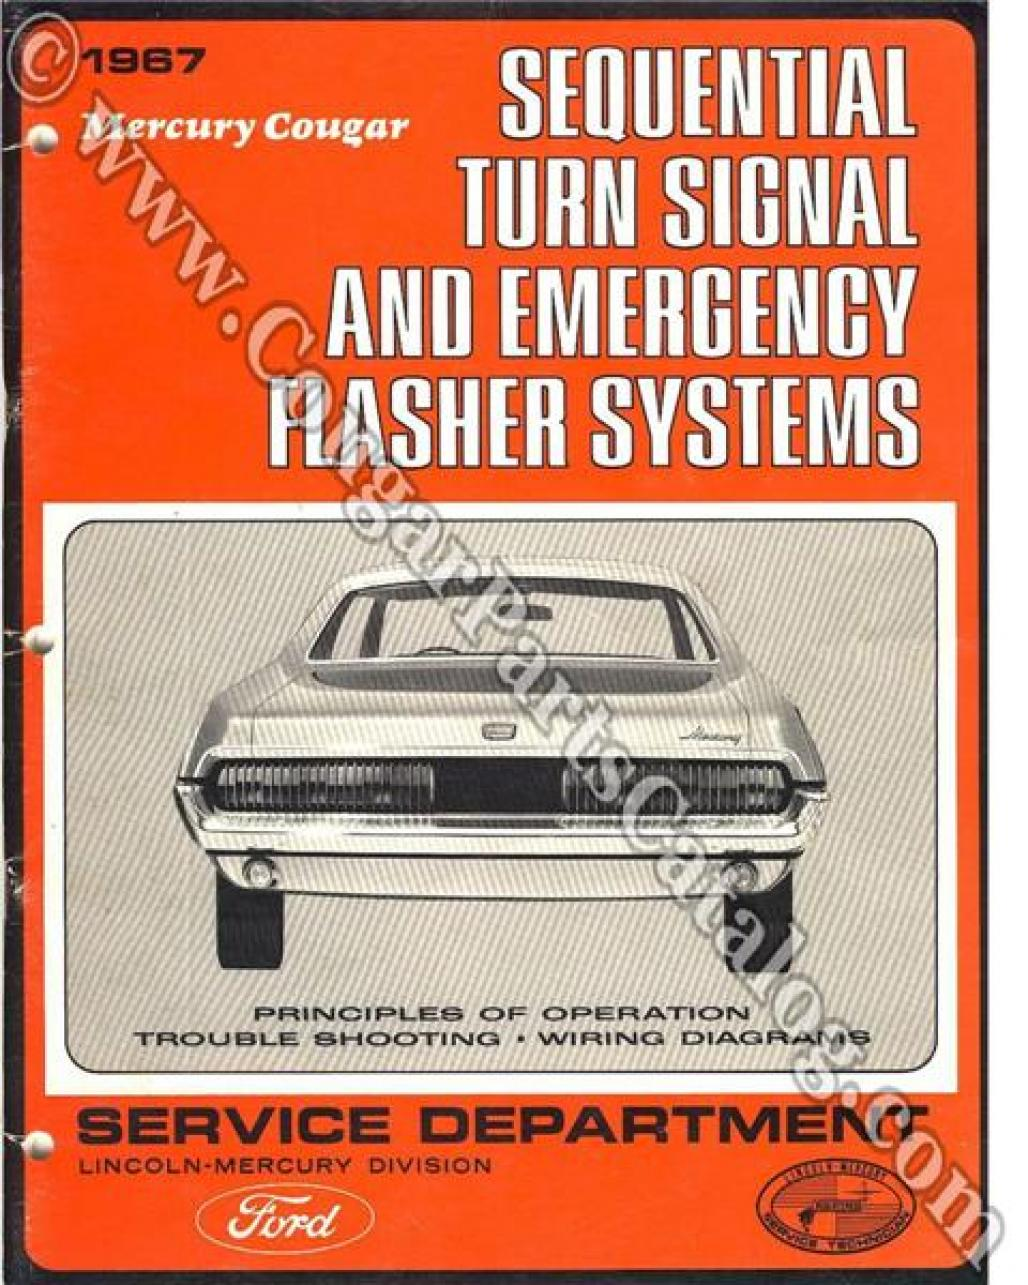 1968 Mercury Cougar Wiring Diagram Free Image For Wiring Diagrams And